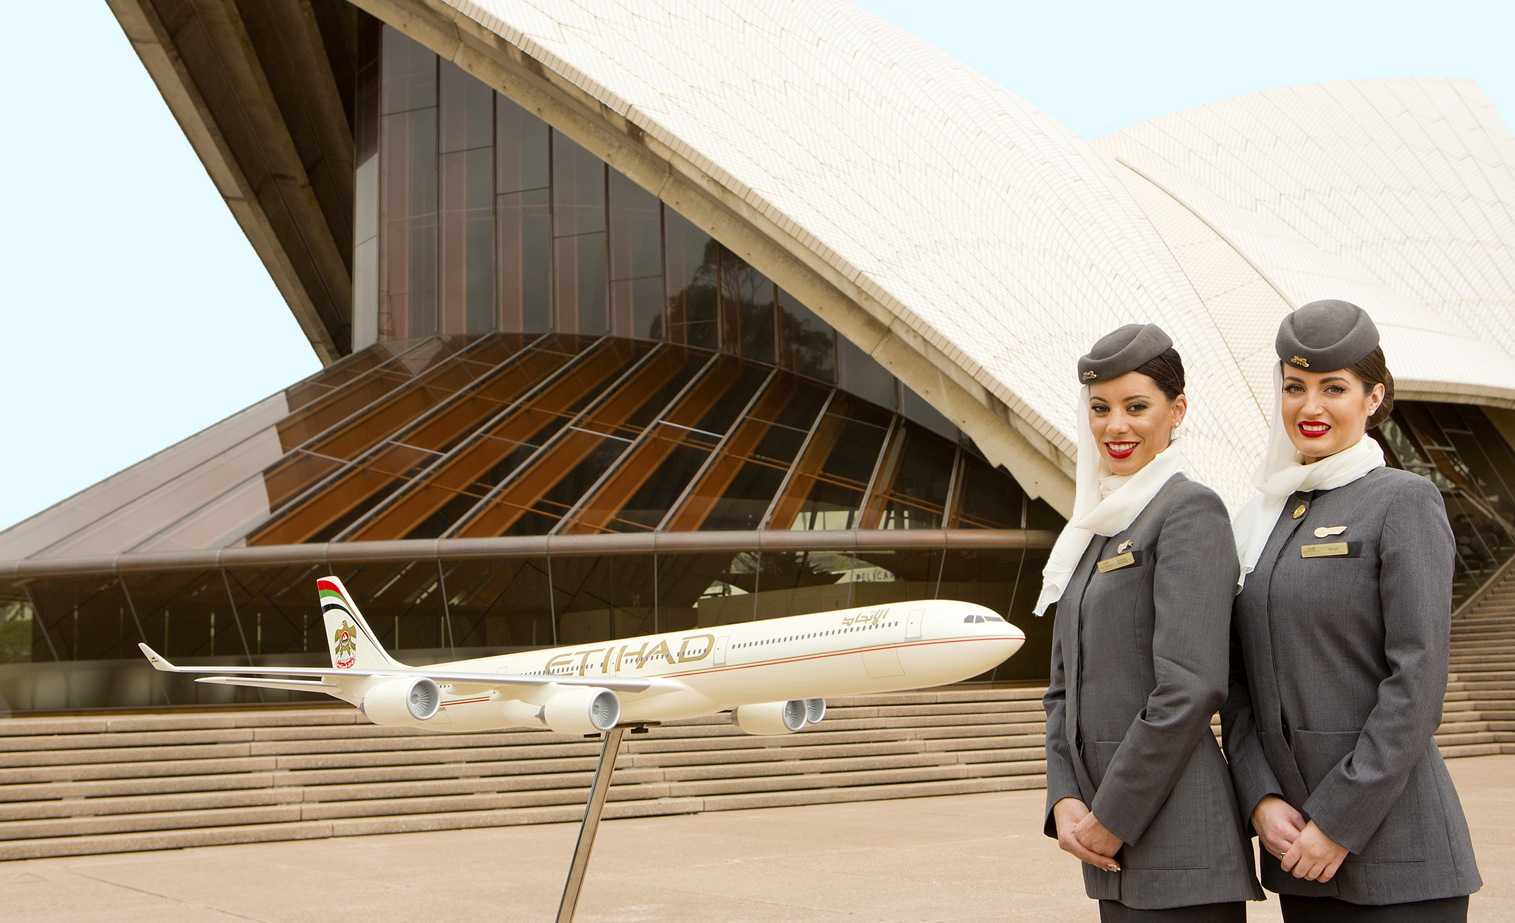 Etihad Signs 'Multimillion Dollar Deal' With Sydney Opera House